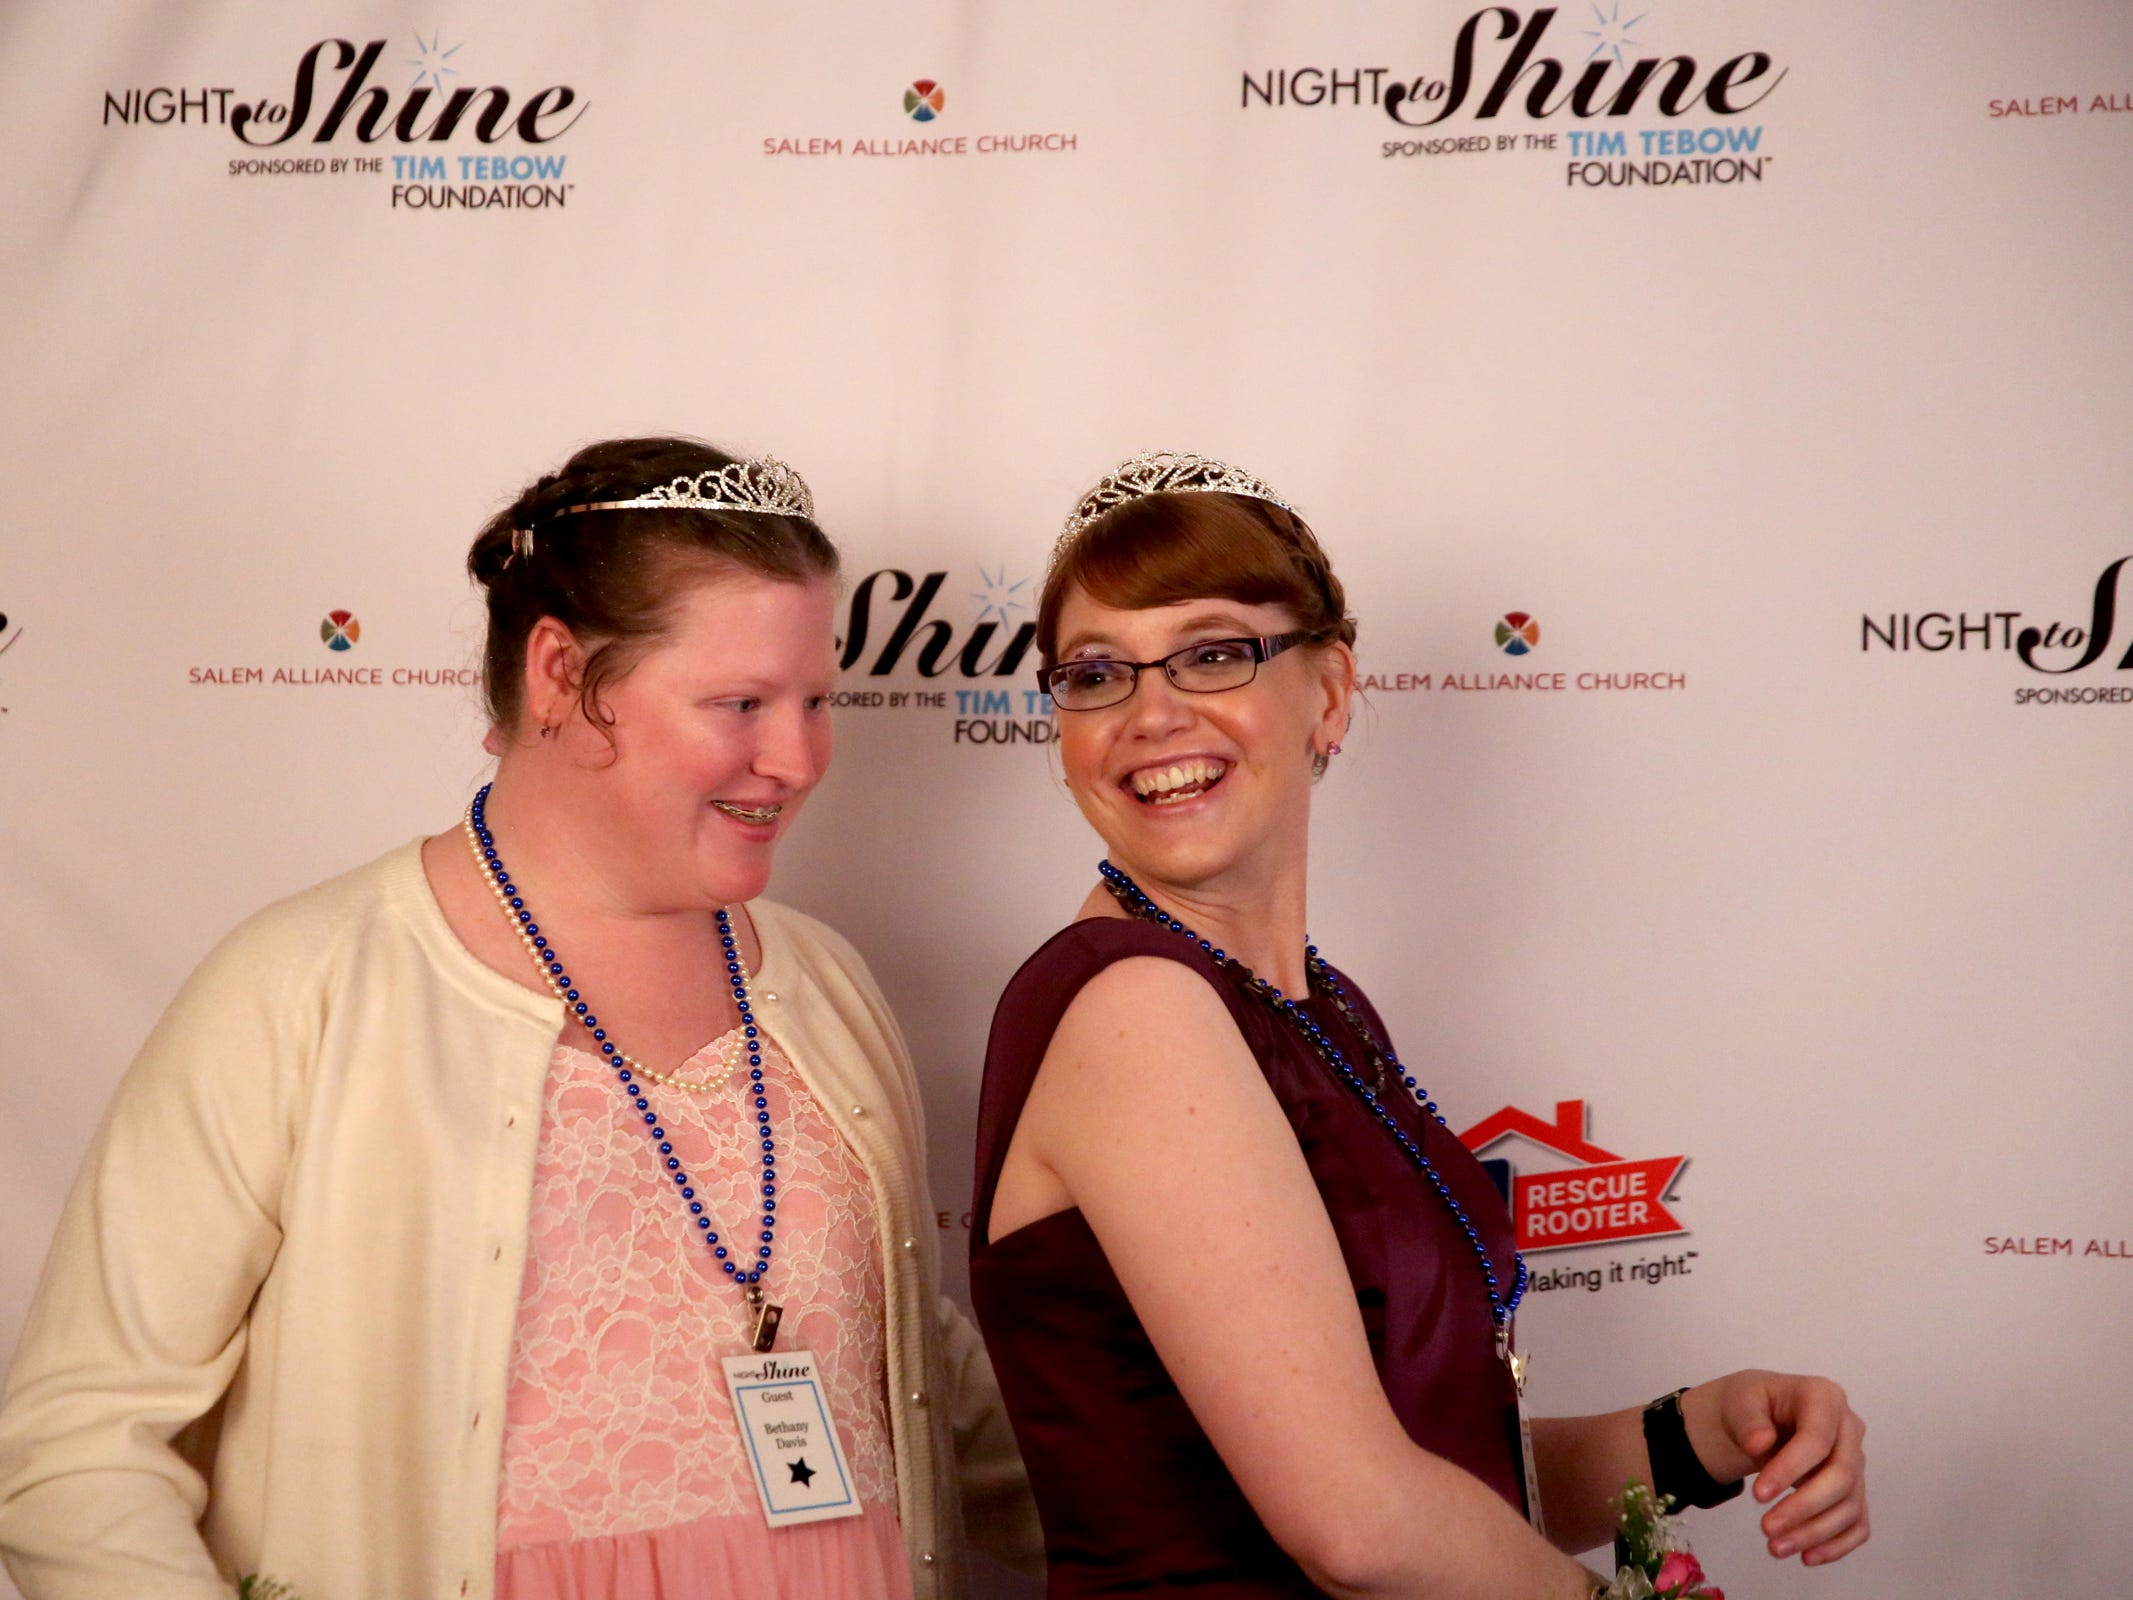 Kris Burden, right, 36, of Salem, and her friend Bethany Davis, 34, of Alliance, have their photos taken at Night to Shine, a prom night experience for people with special needs, at Salem Alliance Church on Friday, Feb. 8, 2019.